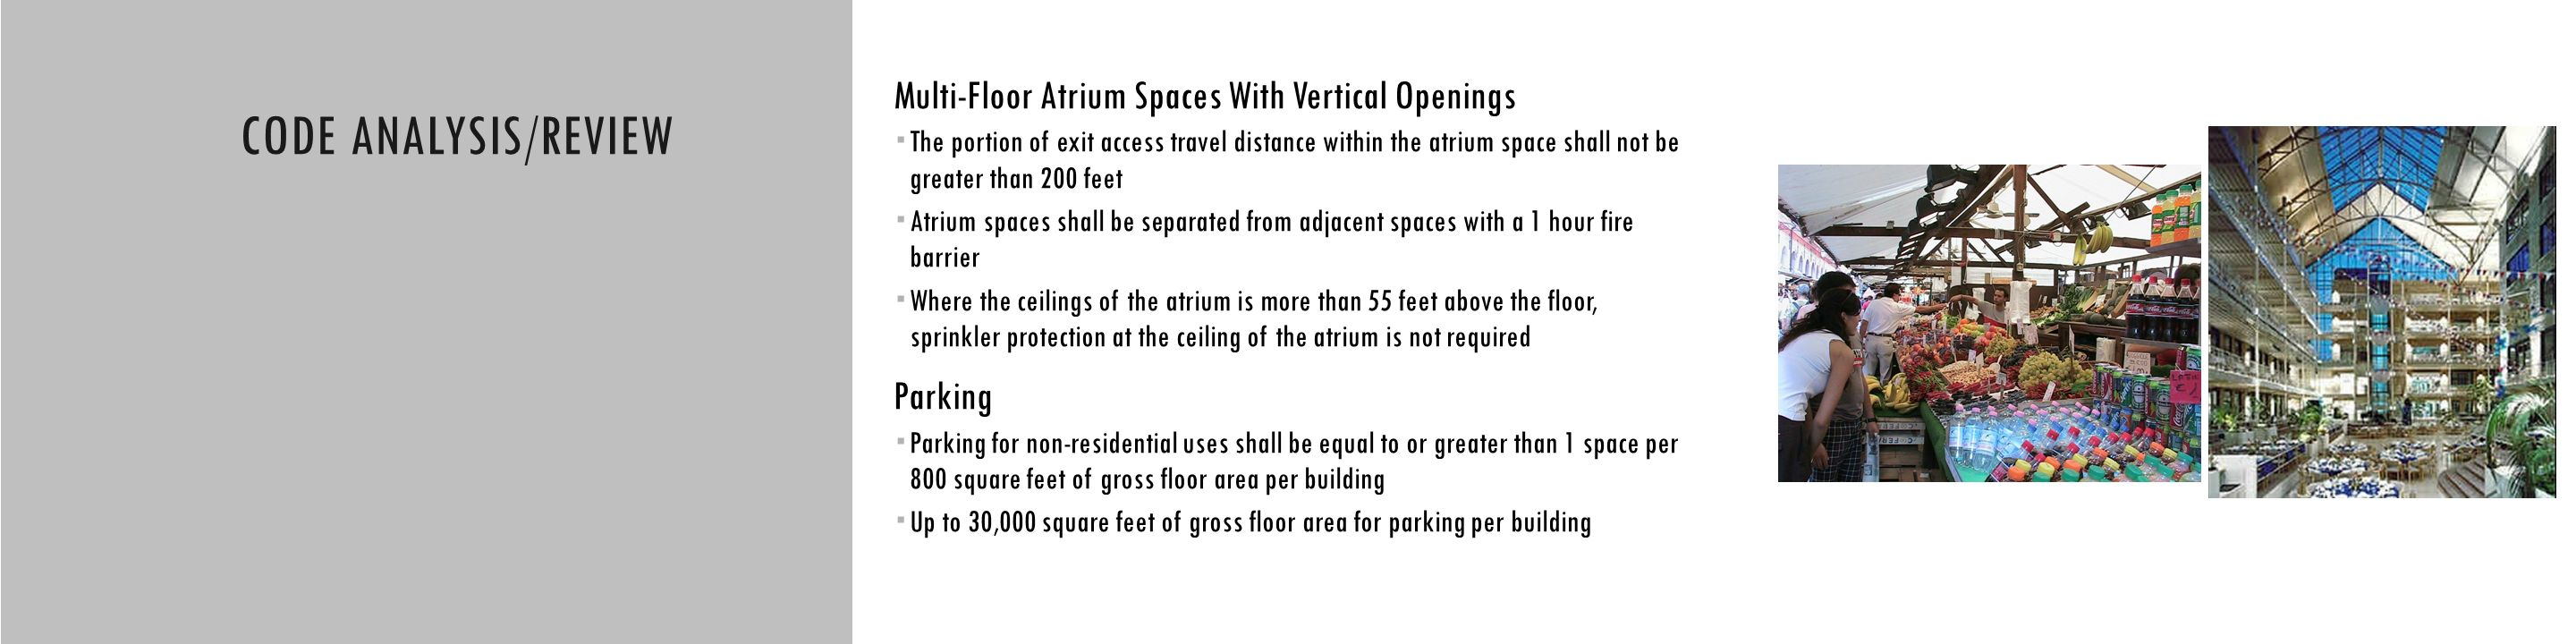 CODE ANALYSIS CODE ANALYSIS/REVIEW Multi-Floor Atrium Spaces With Vertical Openings  The portion of exit access travel distance within the atrium space shall not be greater than 200 feet  Atrium spaces shall be separated from adjacent spaces with a 1 hour fire barrier  Where the ceilings of the atrium is more than 55 feet above the floor, sprinkler protection at the ceiling of the atrium is not required Parking  Parking for non-residential uses shall be equal to or greater than 1 space per 800 square feet of gross floor area per building  Up to 30,000 square feet of gross floor area for parking per building